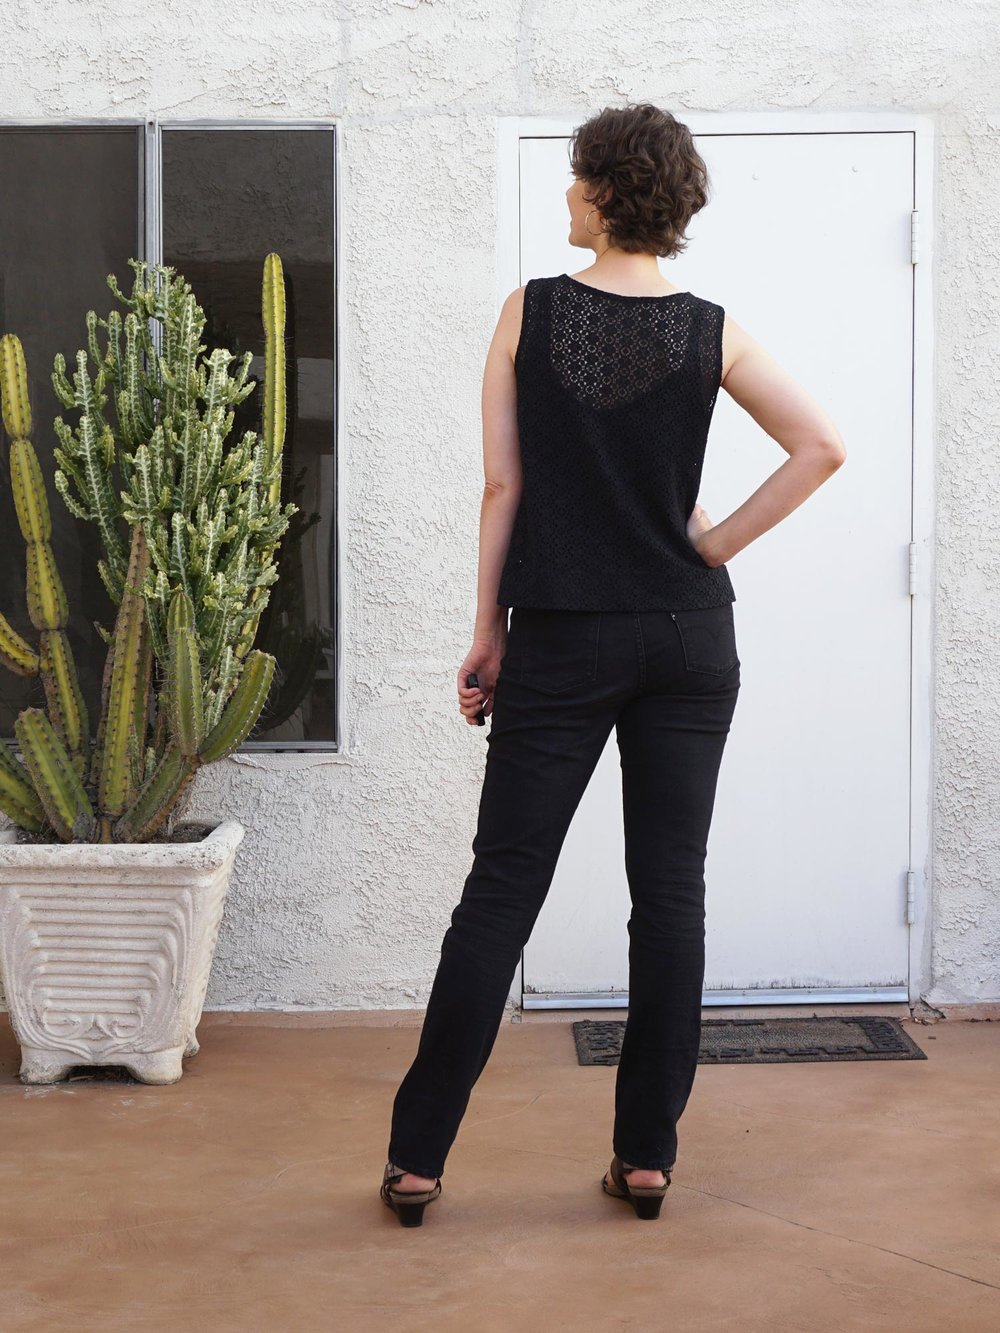 DIY Lace Top –Review of the Willow Tank by Grainline Studio | Sew DIY